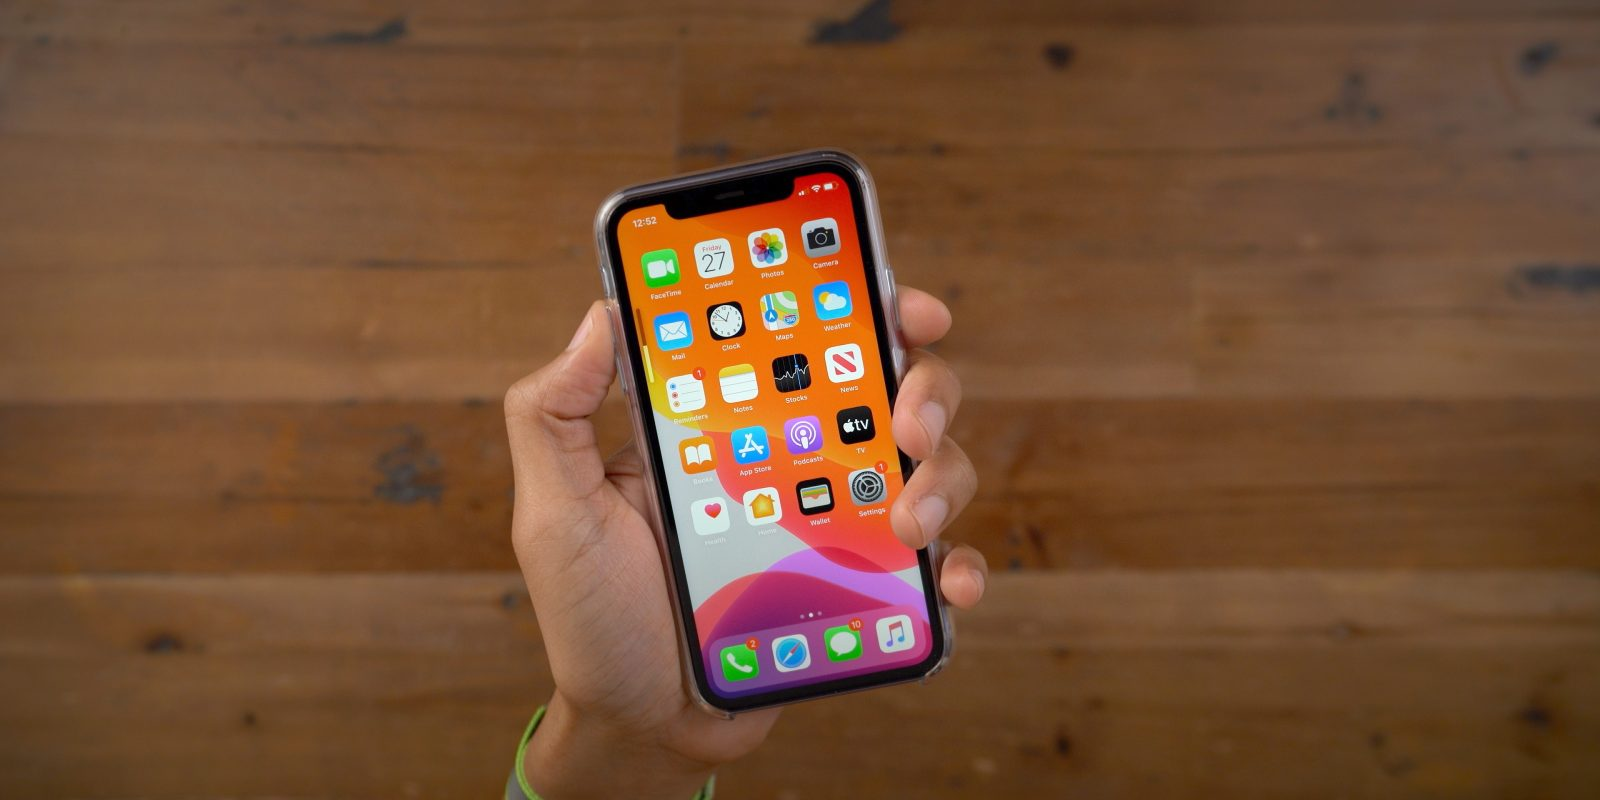 Apple releases iOS 13.1.2 with bug fixes for Camera app, iCloud backups, and more